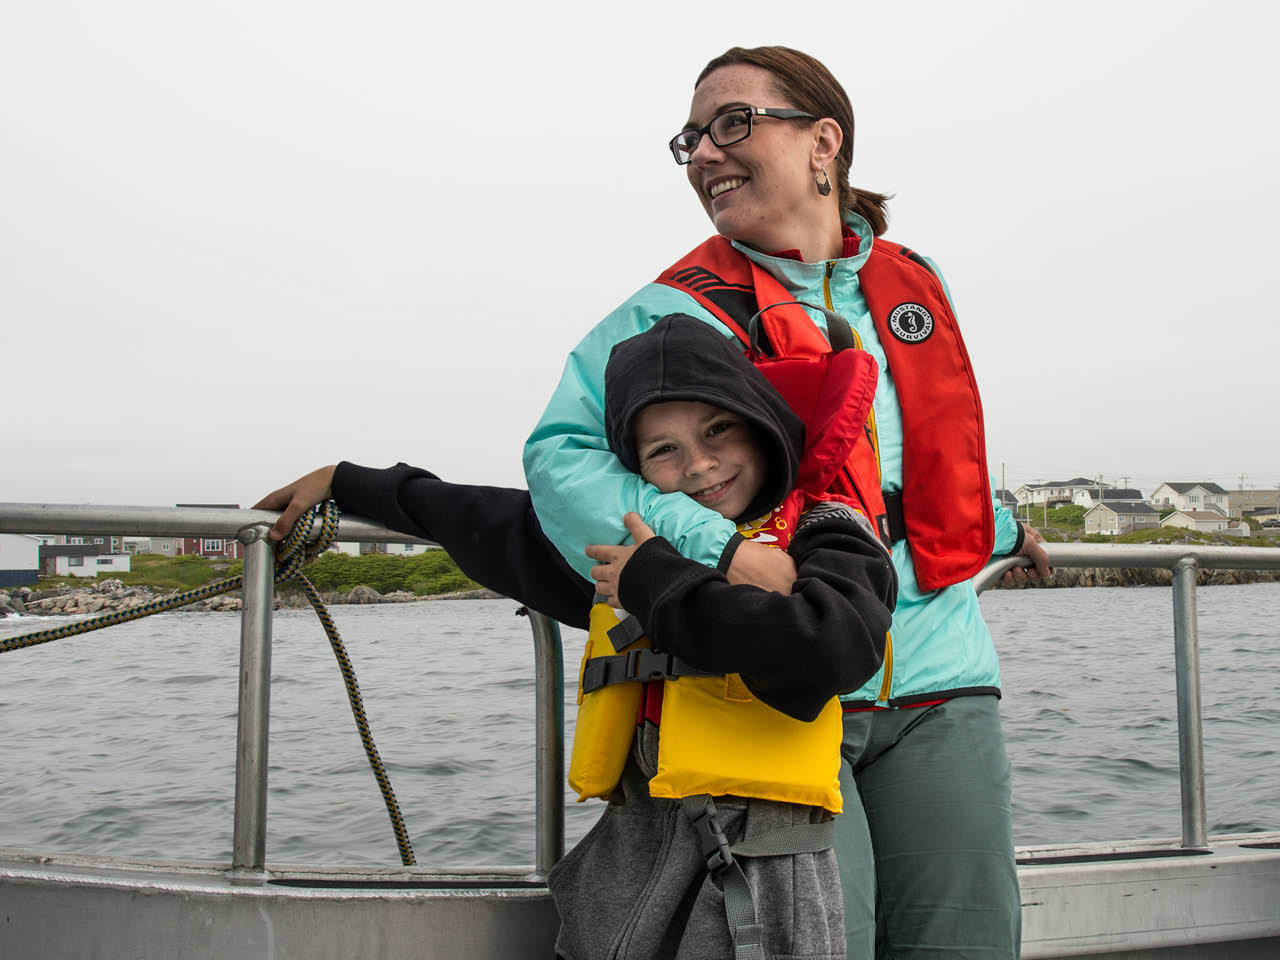 A woman hugging a young boy while riding a boat on the lake